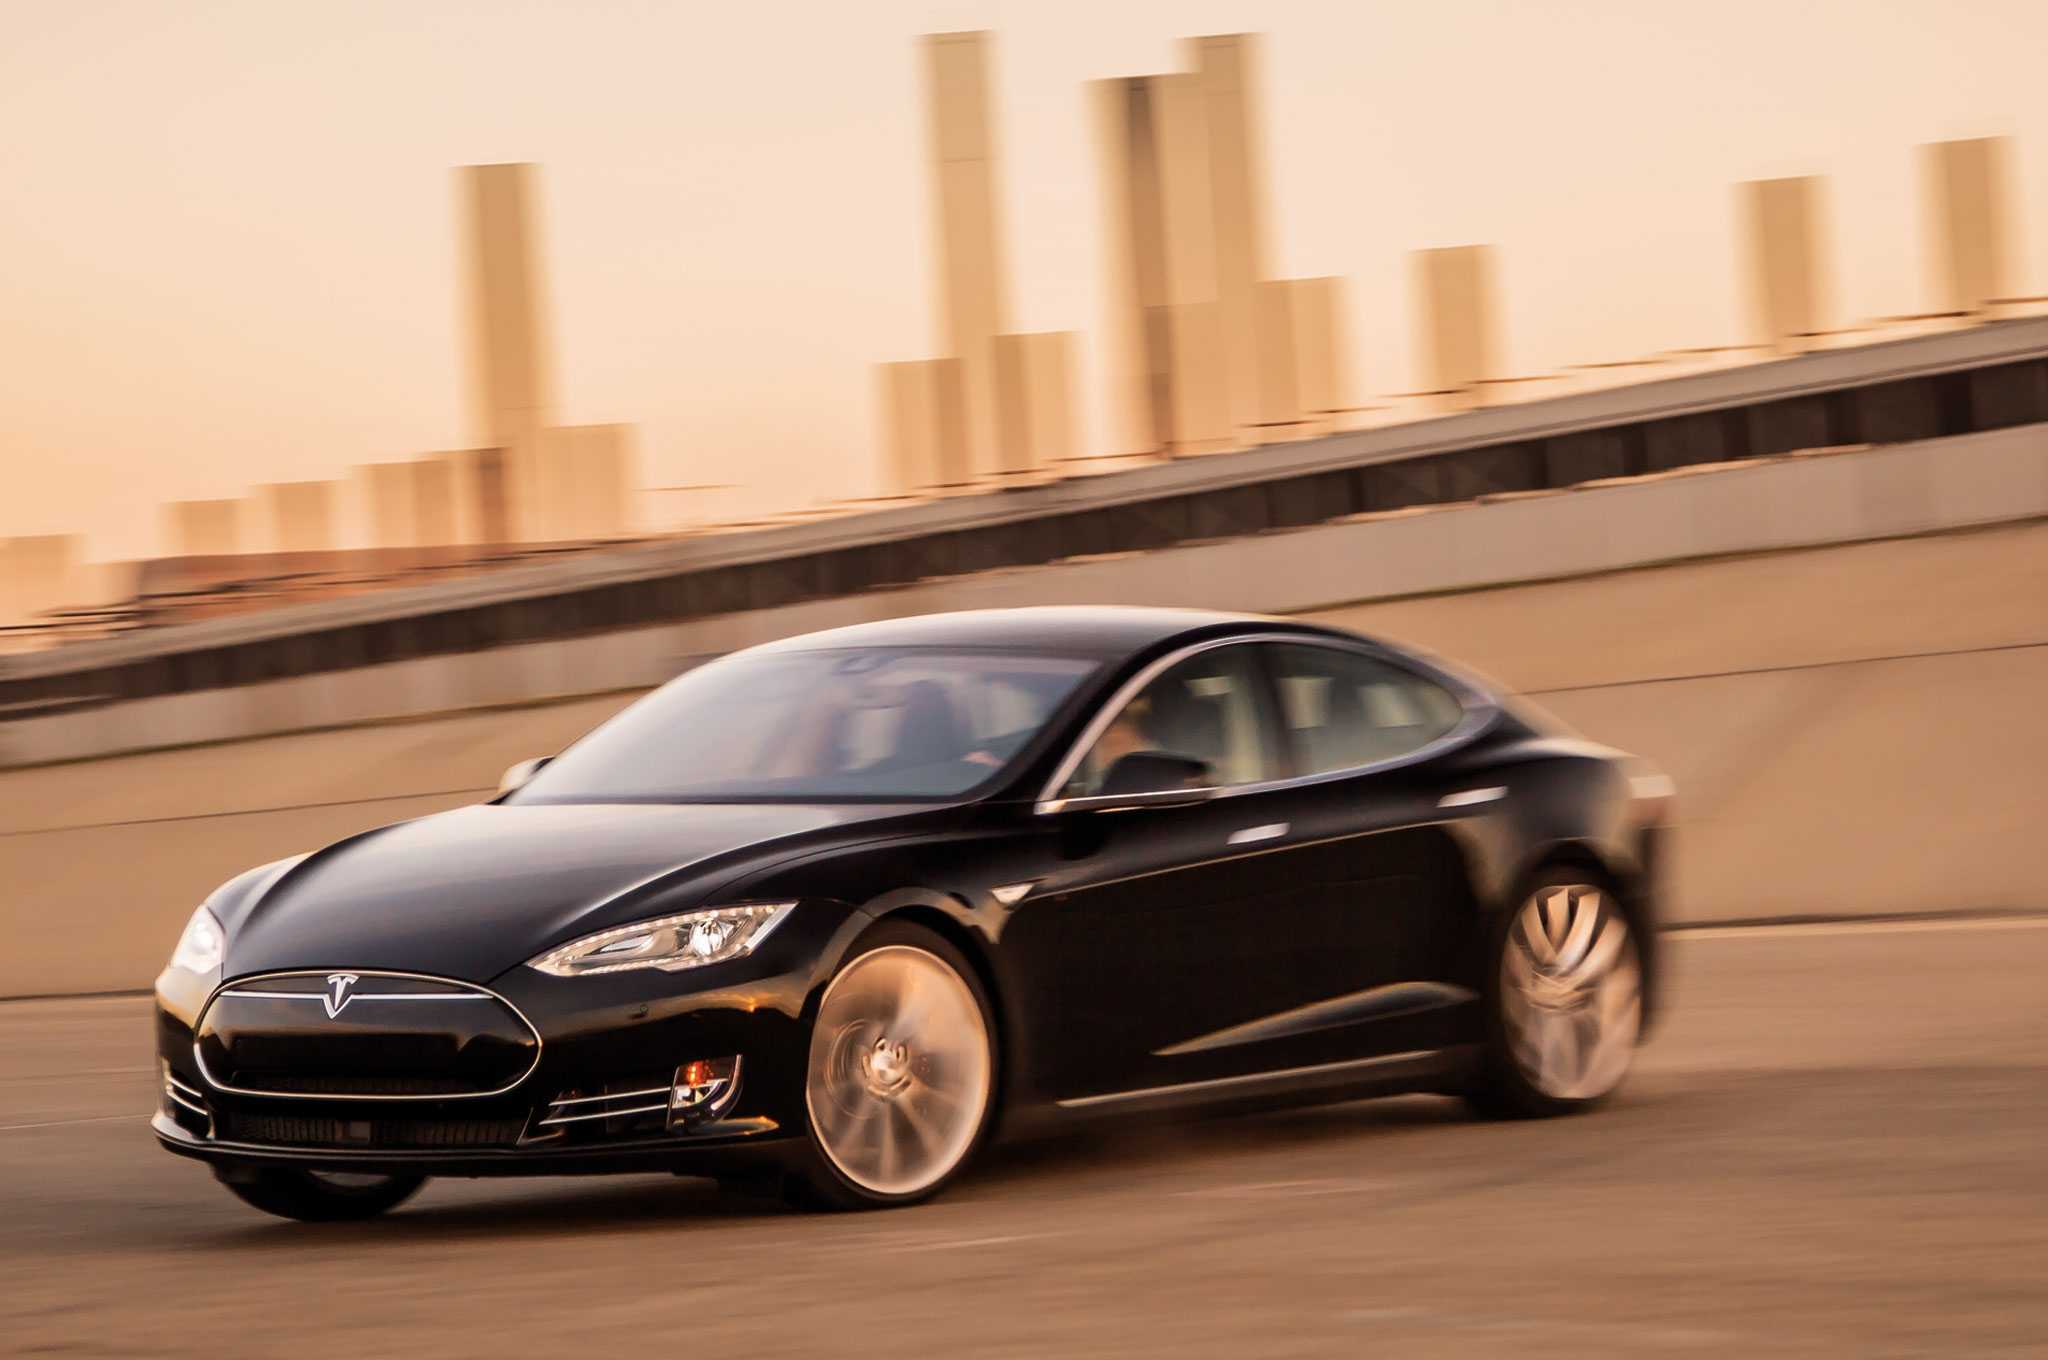 The Electric 2015 Tesla Model S